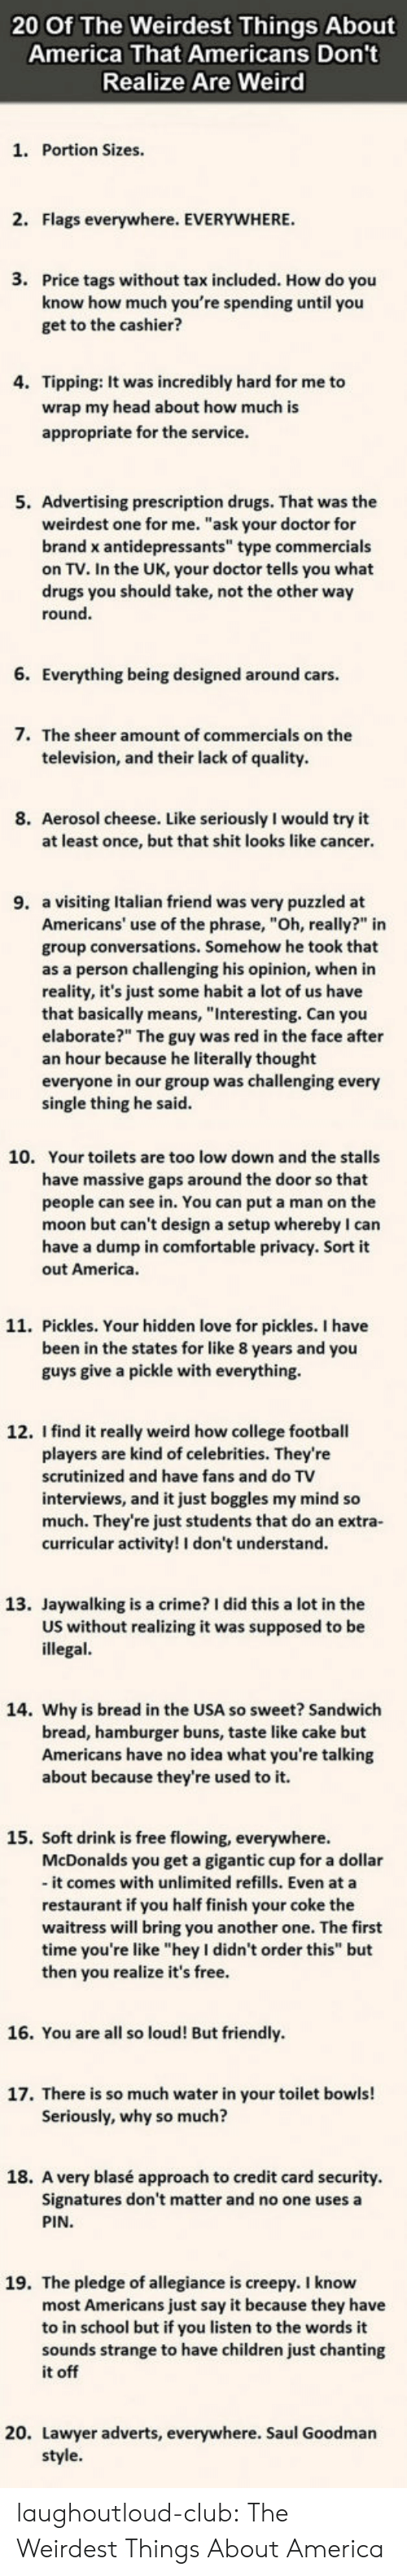 "College football: 20 Of The Weirdest Things About  America That Americans Don't  Realize Are Weird  1. Portion Sizes.  2. Flags everywhere. EVERYWHERE  3.  Price tags without tax included. How do you  know how much you're spending until you  get to the cashier?  4. Tipping: It was incredibly hard for me to  wrap my head about how much is  appropriate for the service  5. Advertising prescription drugs. That was the  weirdest one for me. ""ask your doctor for  brand x antidepressants"" type commercials  on TV. In the UK, your doctor tells you what  drugs you should take, not the other way  round  6. Everything being designed around cars.  7.  The sheer amount of commercials on the  television, and their lack of quality  8. Aerosol cheese. Like seriously I would try it  at least once, but that shit looks like cancer  9. a visiting Italian friend was very puzzled at  Americans' use of the phrase, ""Oh, really?"" in  group conversations. Somehow he took that  as a person challenging his opinion, when in  reality, it's just some habit a lot of us have  that basically means, ""Interesting. Can you  elaborate?"" The guy was red in the face after  an hour because he literally thought  everyone in our group was challenging every  single thing he said  10.  Your toilets are too low down and the stalls  have massive gaps around the door so that  people can see in. You can put a man on the  moon but can't design a setup whereby I can  have a dump in comfortable privacy. Sort it  out America  11. Pickles. Your hidden love for pickles. I have  been in the states for like 8 years and you  guys give a pickle with everything.  12. I find it really weird how college football  players are kind of celebrities. They're  scrutinized and have fans and do TV  interviews, and it just boggles my mind so  much. They're just students that do an extra-  curricular activity! I don't understand  13. Jaywalking is a crime? I did this a lot in the  US without realizing it was supposed to be  illegal  14. Why is bread in the USA so sweet? Sandwich  bread, hamburger buns, taste like cake but  Americans have no idea what you're talking  about because they're used to it.  15. Soft drink is free flowing, everywhere  McDonalds you get a gigantic cup for a dollar  - it comes with unlimited refills. Even at a  restaurant if you half finish your coke the  waitress will bring you another one. The first  time you're like ""hey I didn't order this"" but  then you realize it's free  16. You are all so loud! But friendly  17. There is so much water in your toilet bowls!  Seriously, why so much?  18. A very blasé approach to credit card security  Signatures don't matter and no one uses a  PIN  19. The pledge of allegiance is creepy. I know  most Americans just say it because they have  to in school but if you listen to the words it  sounds strange to have children just chanting  it off  20. Lawyer adverts, everywhere. Saul Goodman laughoutloud-club:  The Weirdest Things About America"